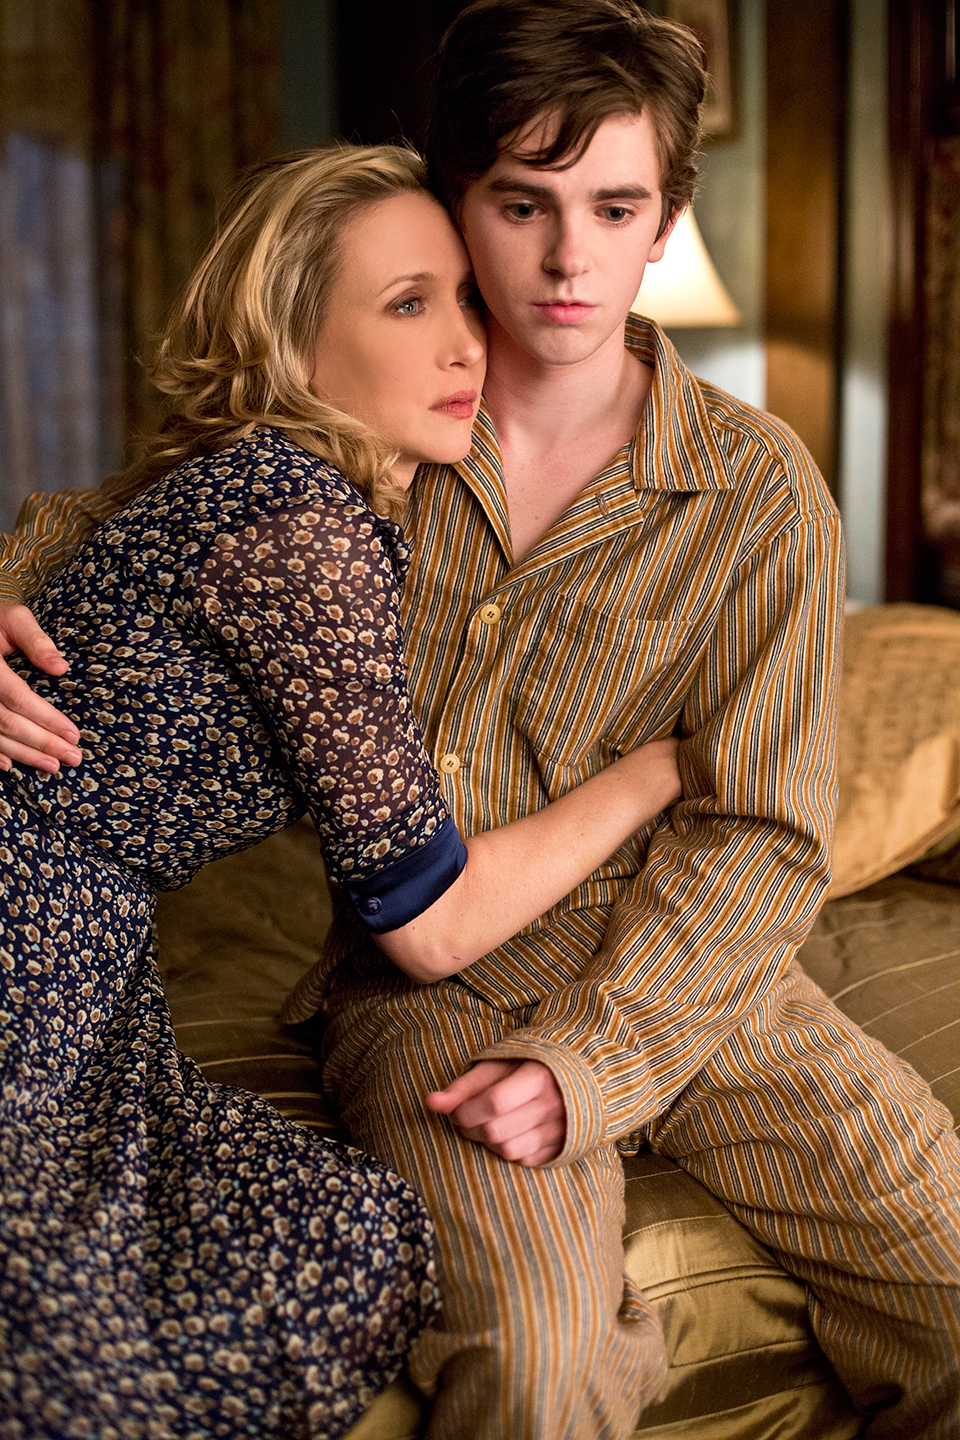 File:19-norma-comforts-norman.jpg